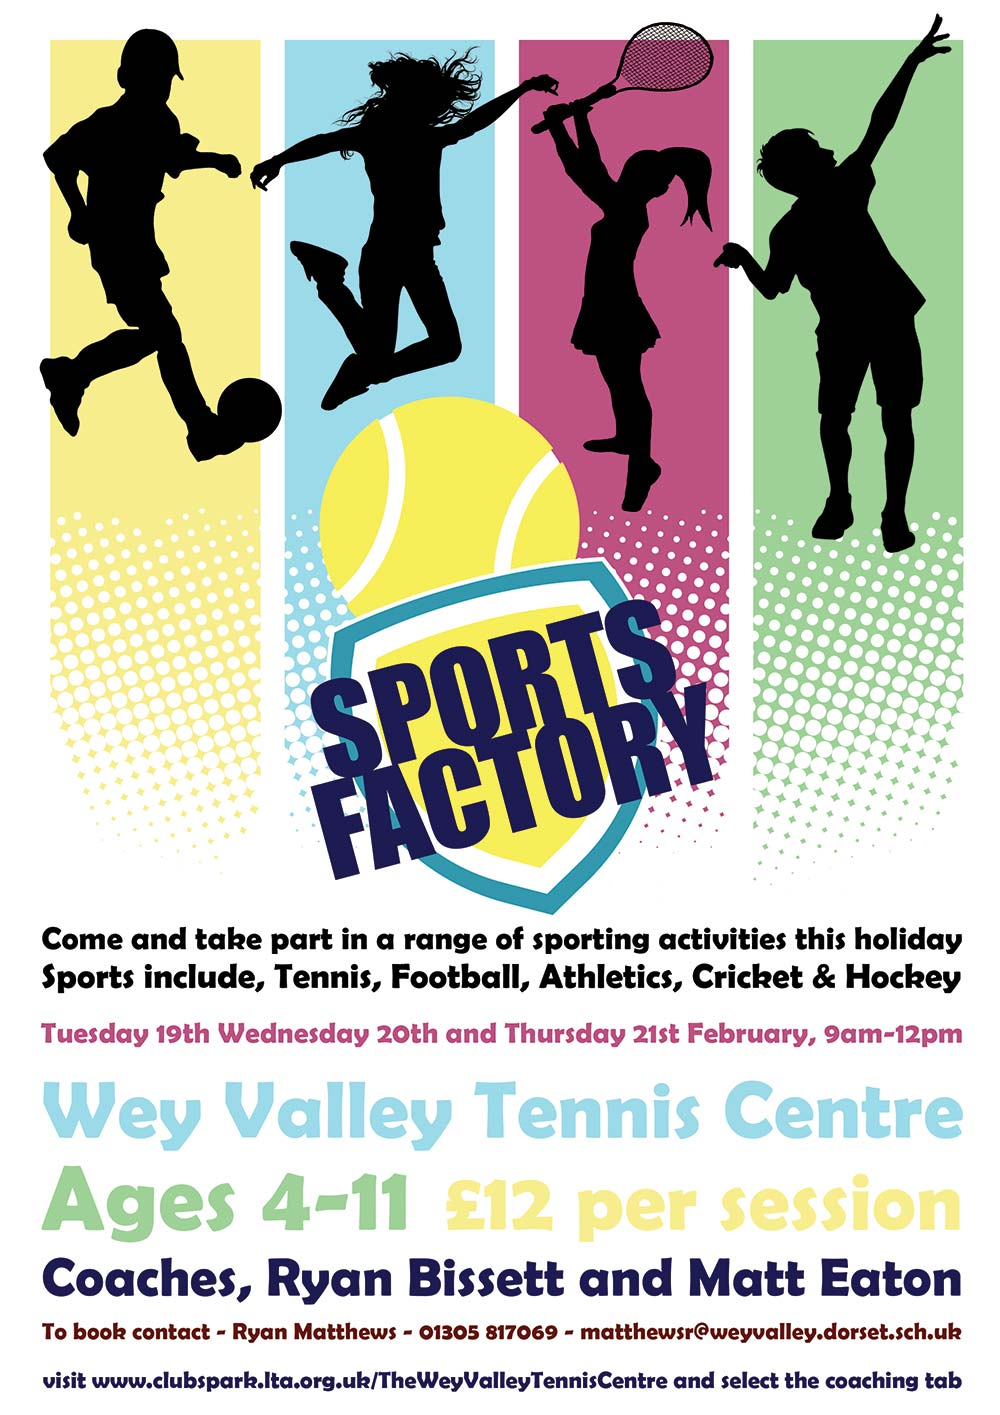 Sports Factory - February 2019 Half Term